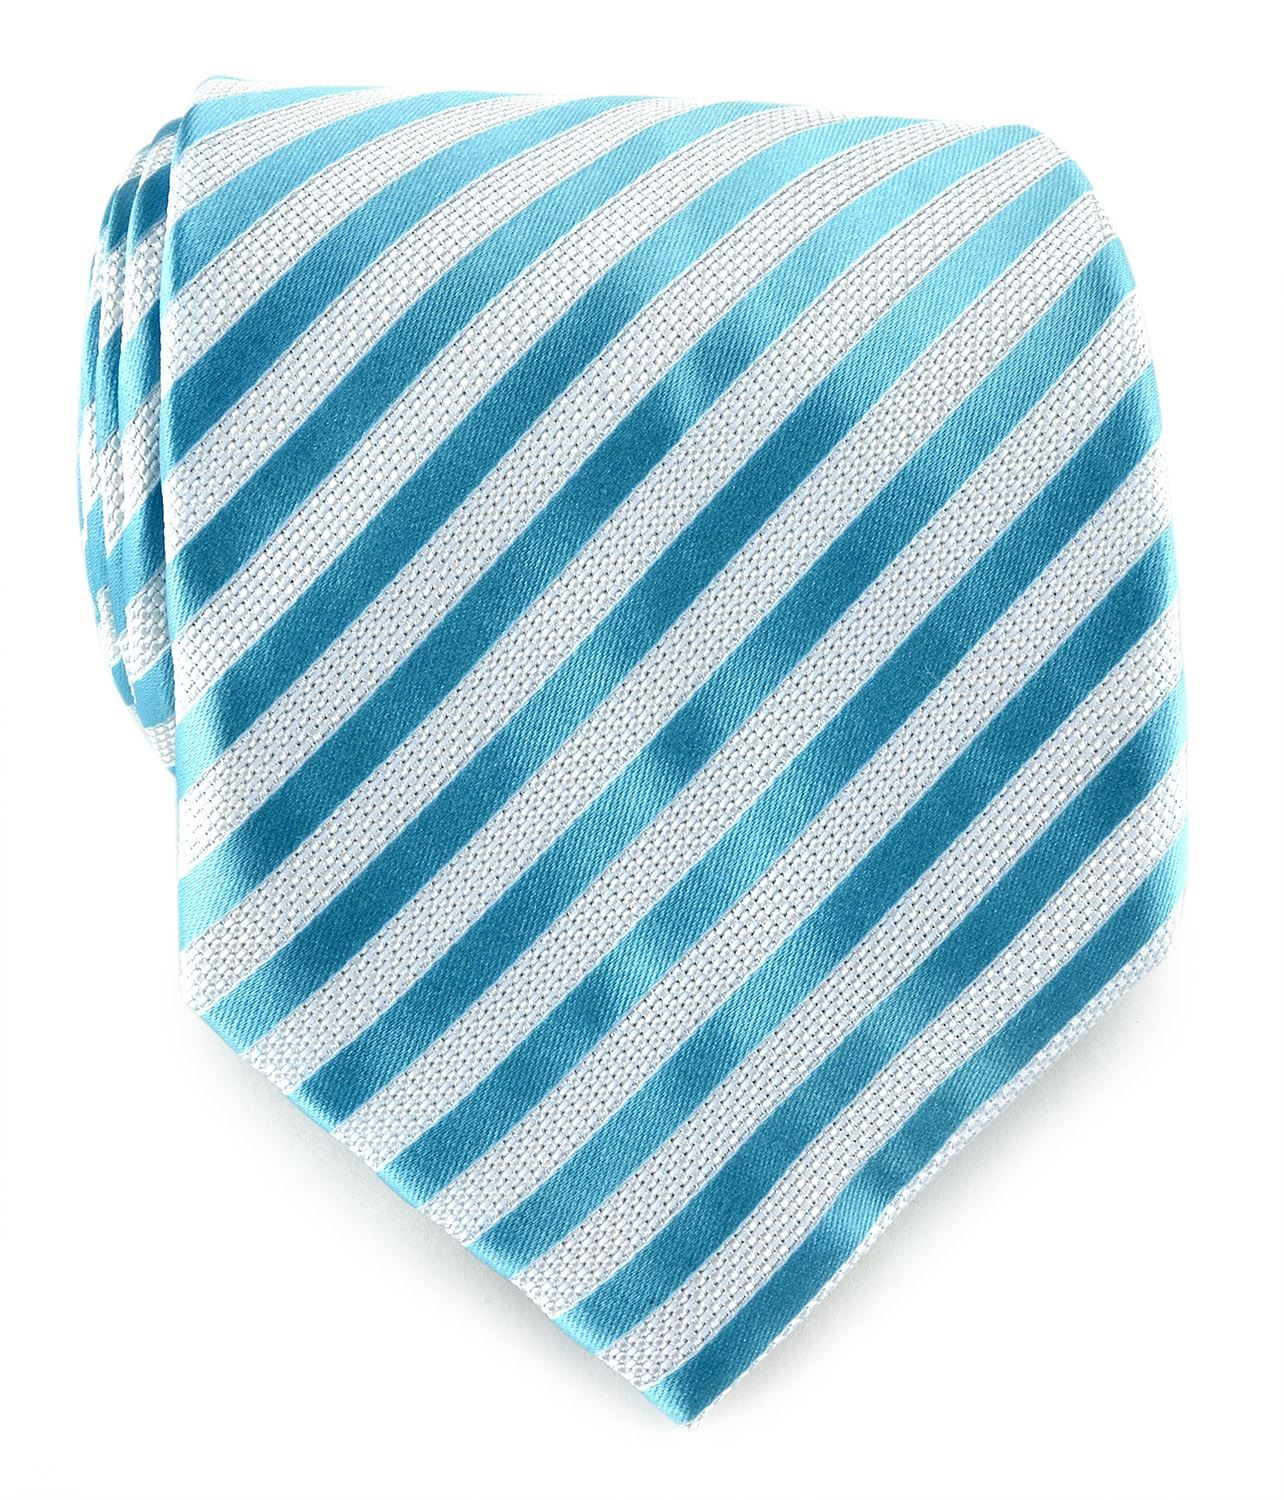 Uomo Vennetto Men's Tie - Clean Thin Striped Tie and Handkerchief Stylish Fashio - Oasis